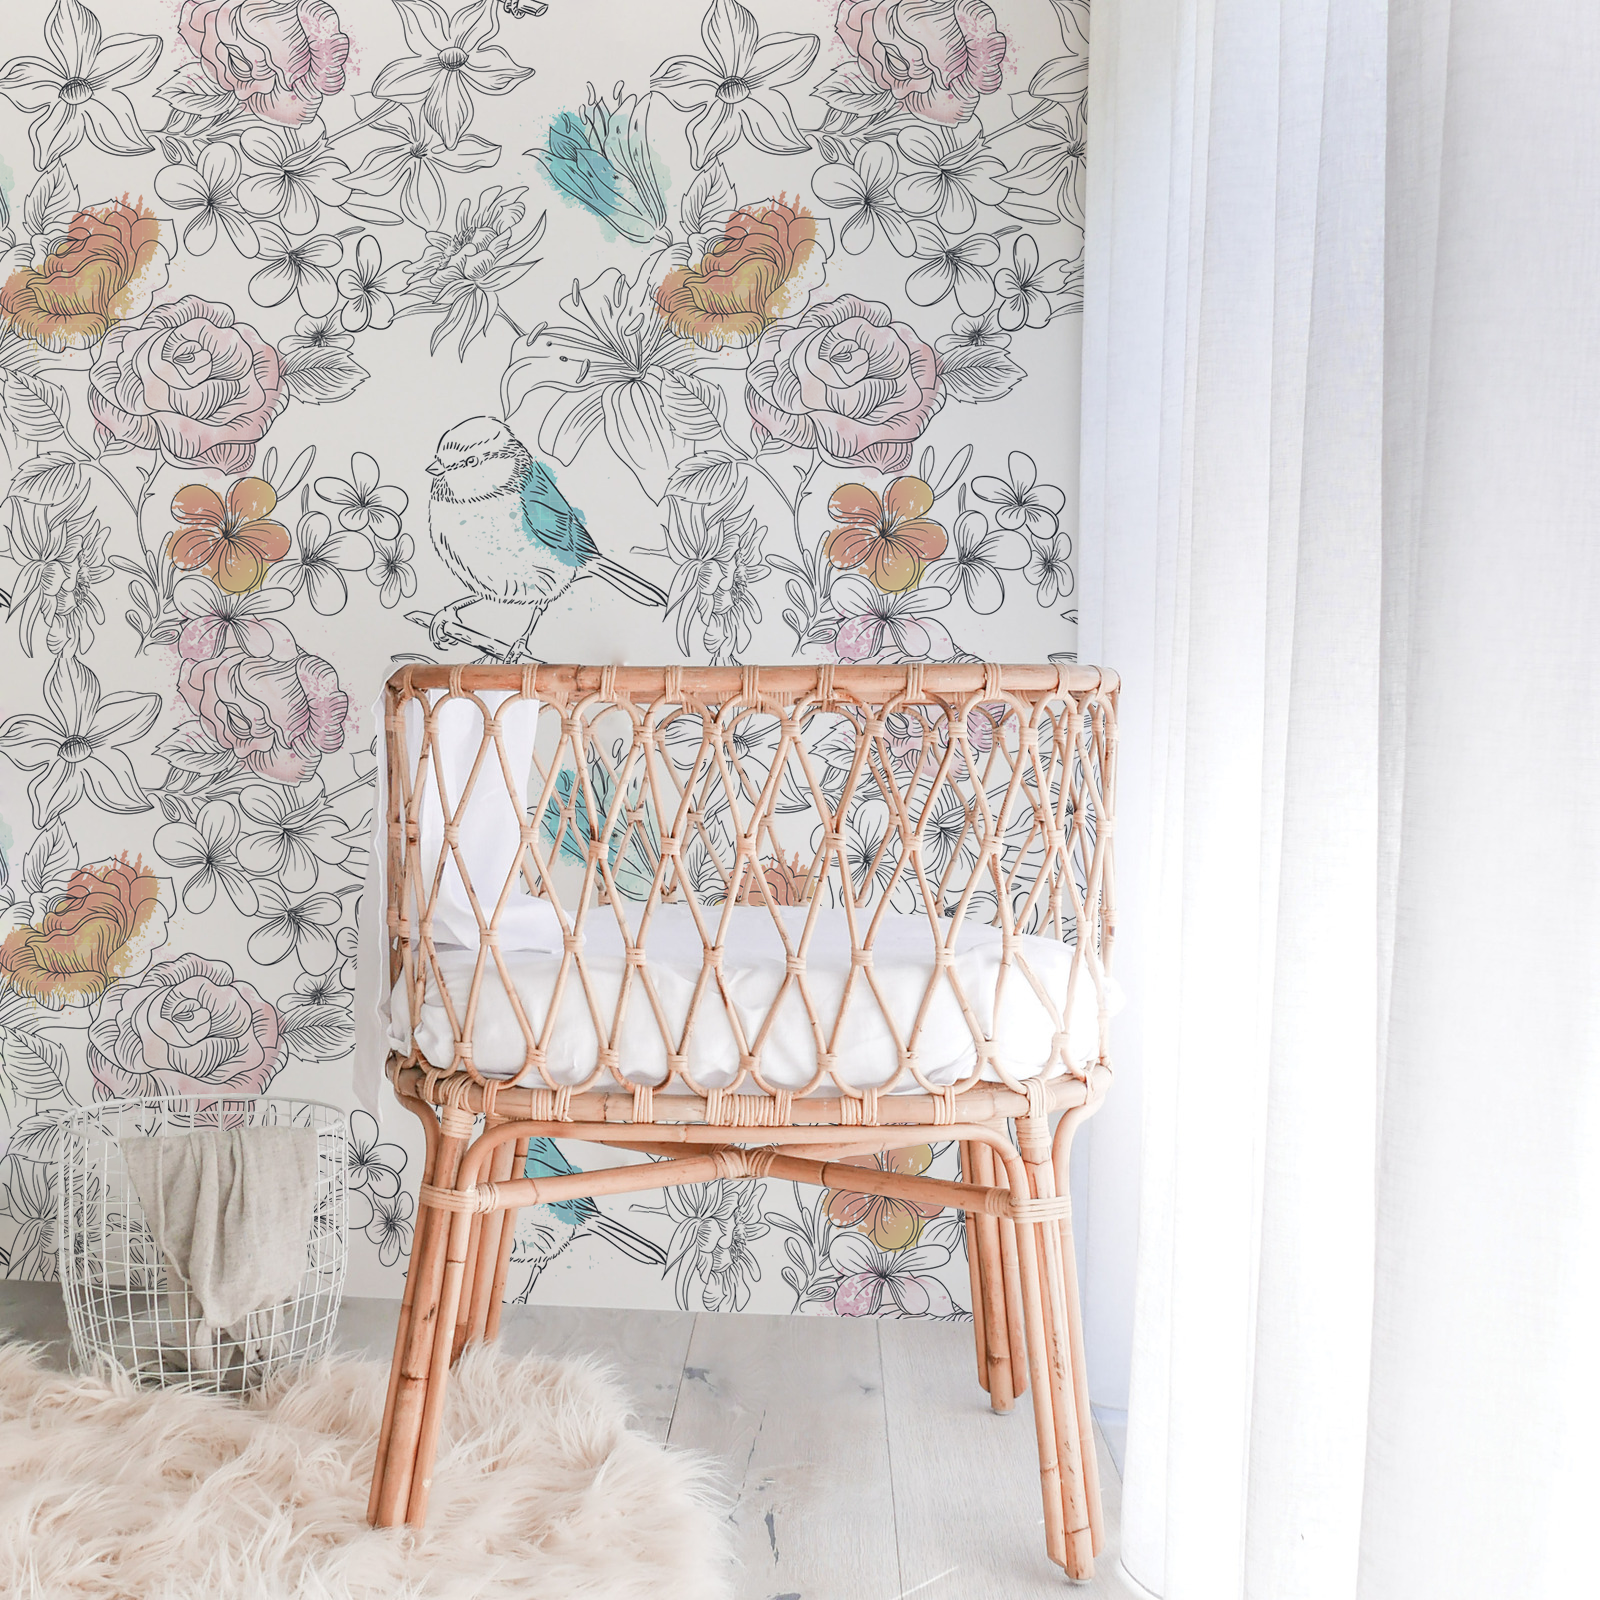 Flowerbed Sparrow Removable Wallpaper Kids room